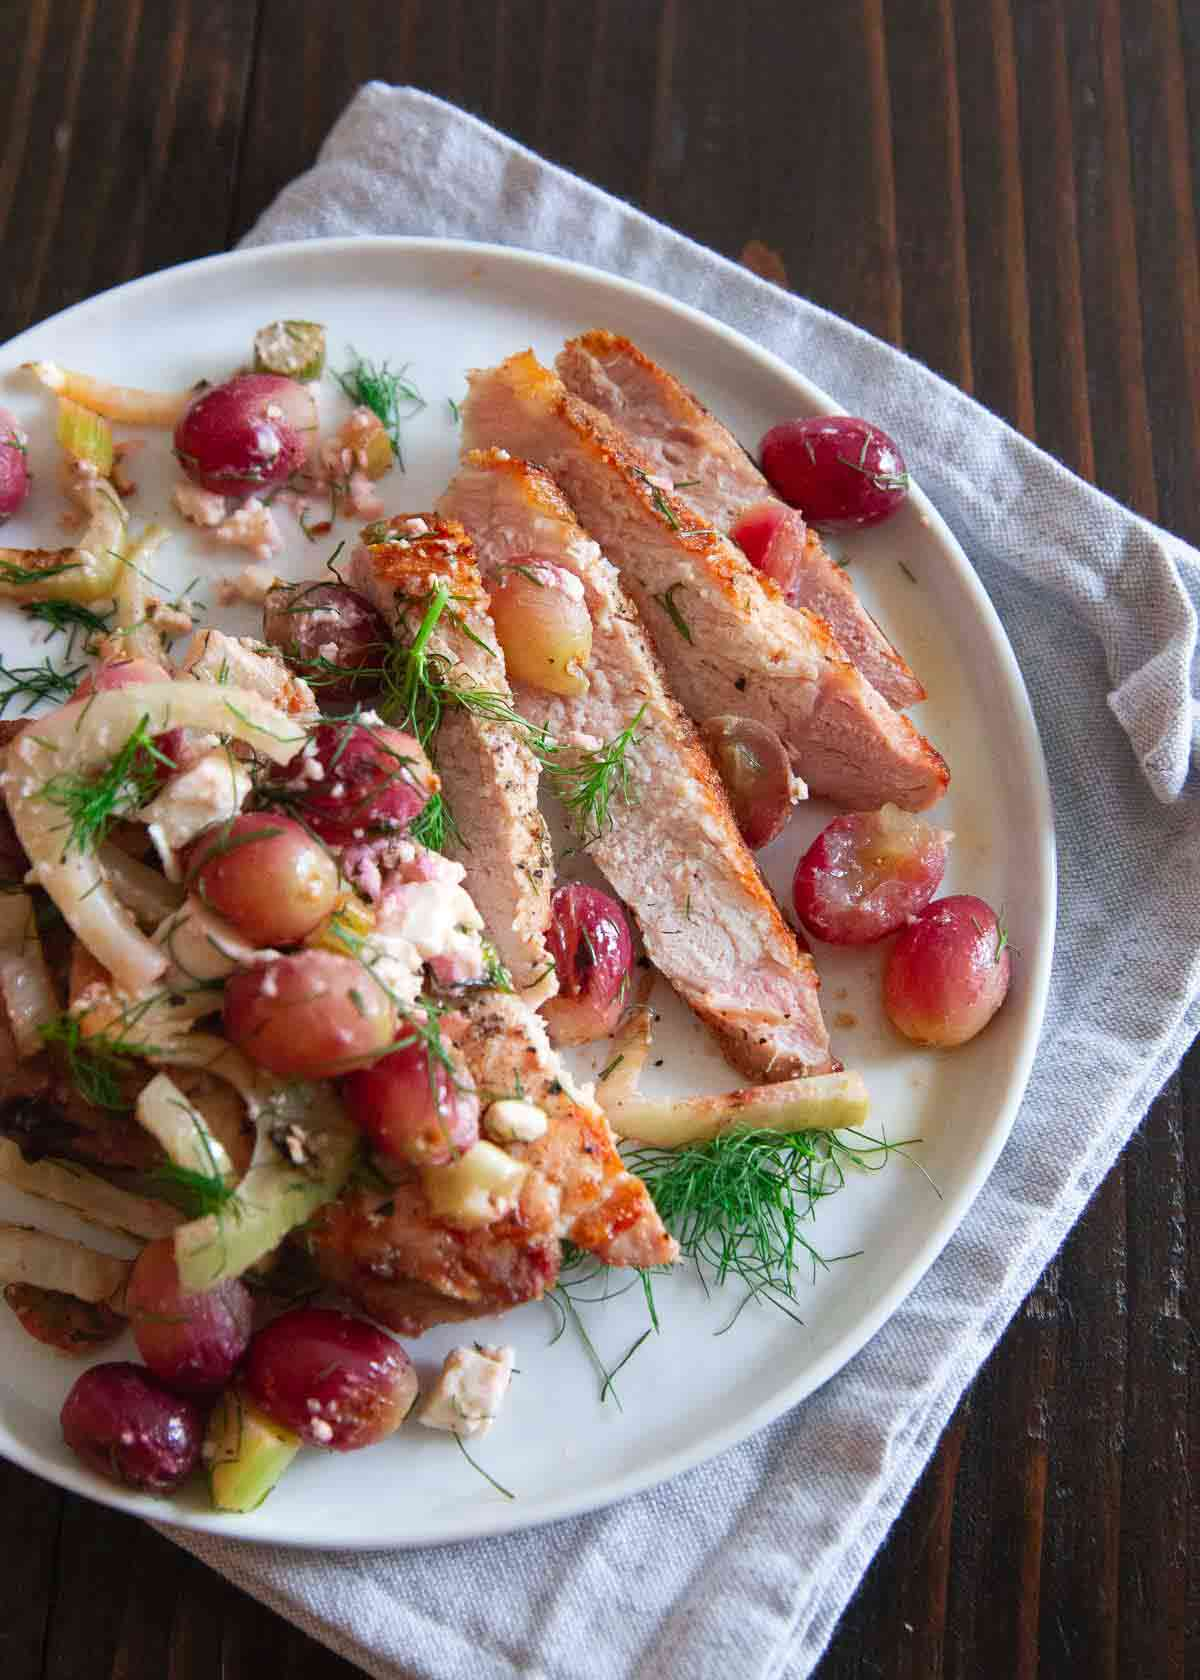 This easy grilled meal of pork chops with fennel and grapes was the perfect way to break in our new Weber Genesis ii grill.